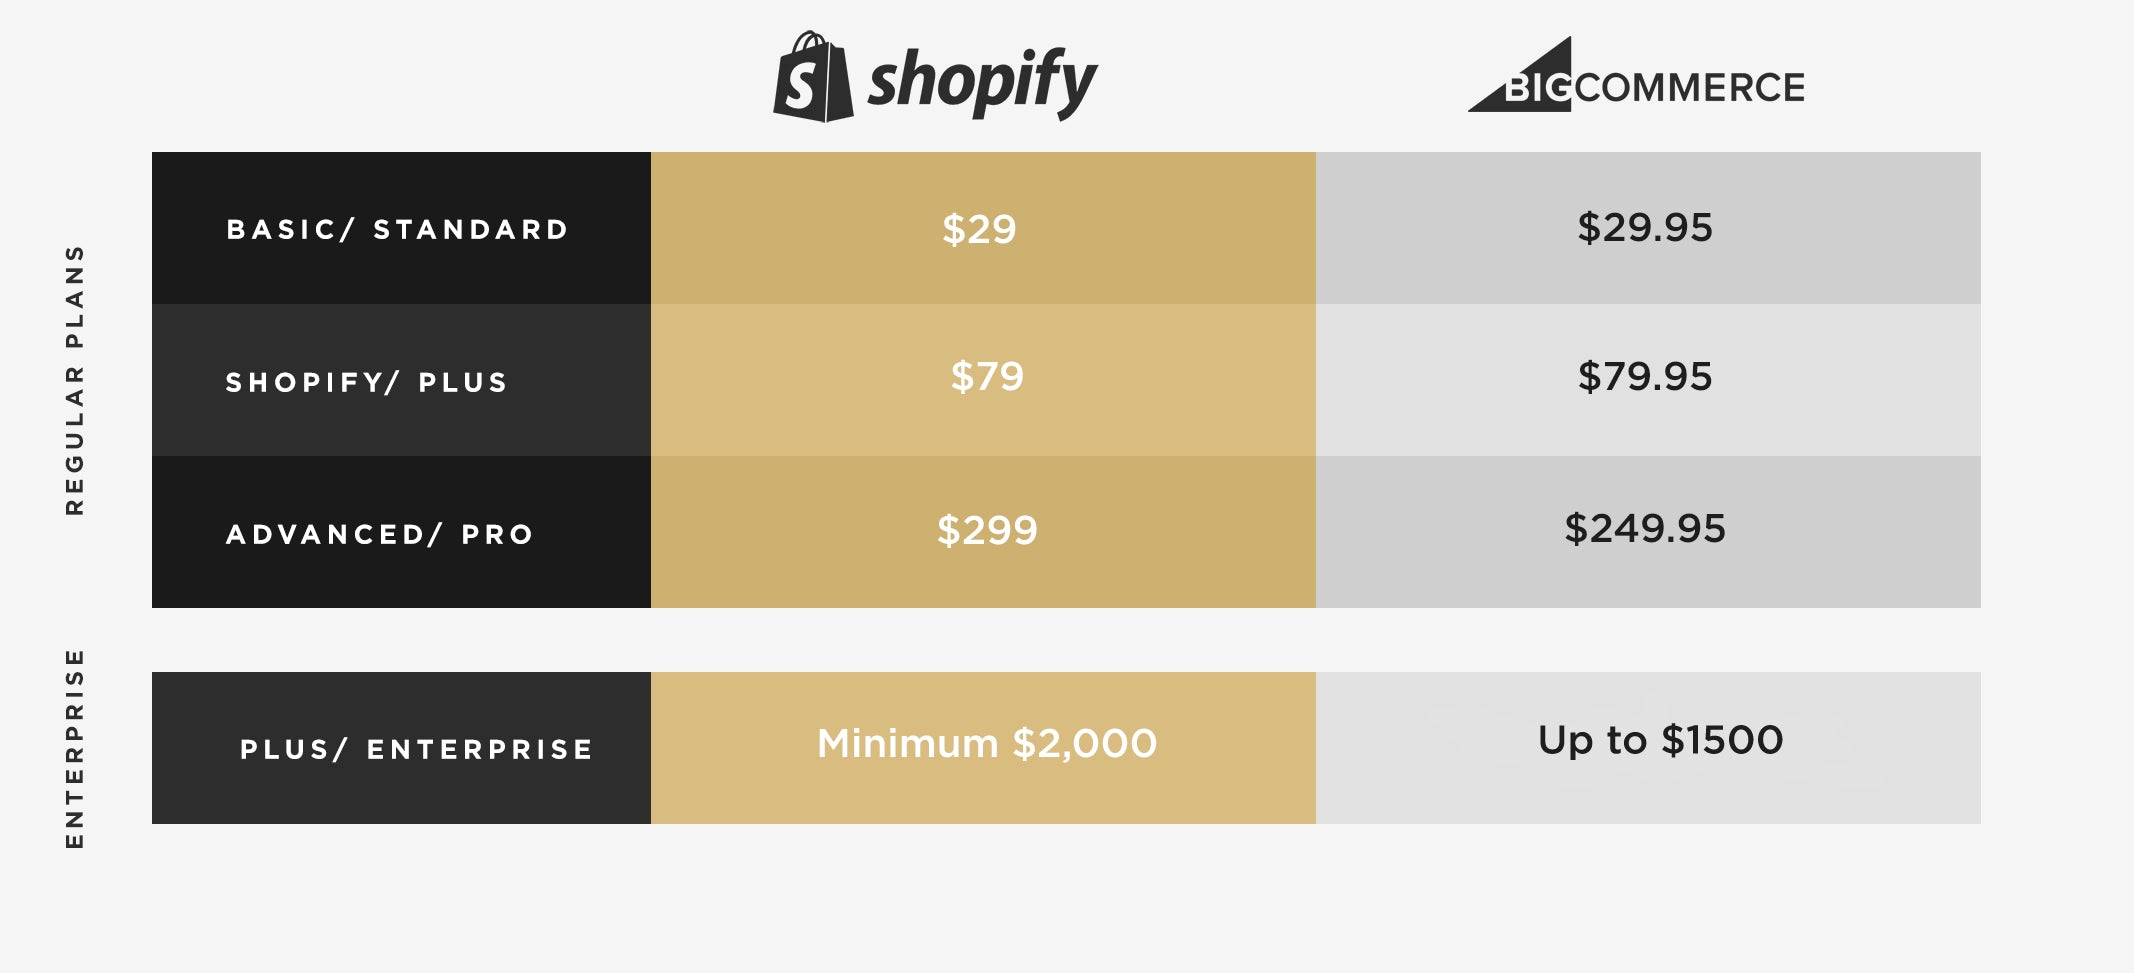 Bigcommerce Vs Shopify Which Enterprise Solution Is Right For You